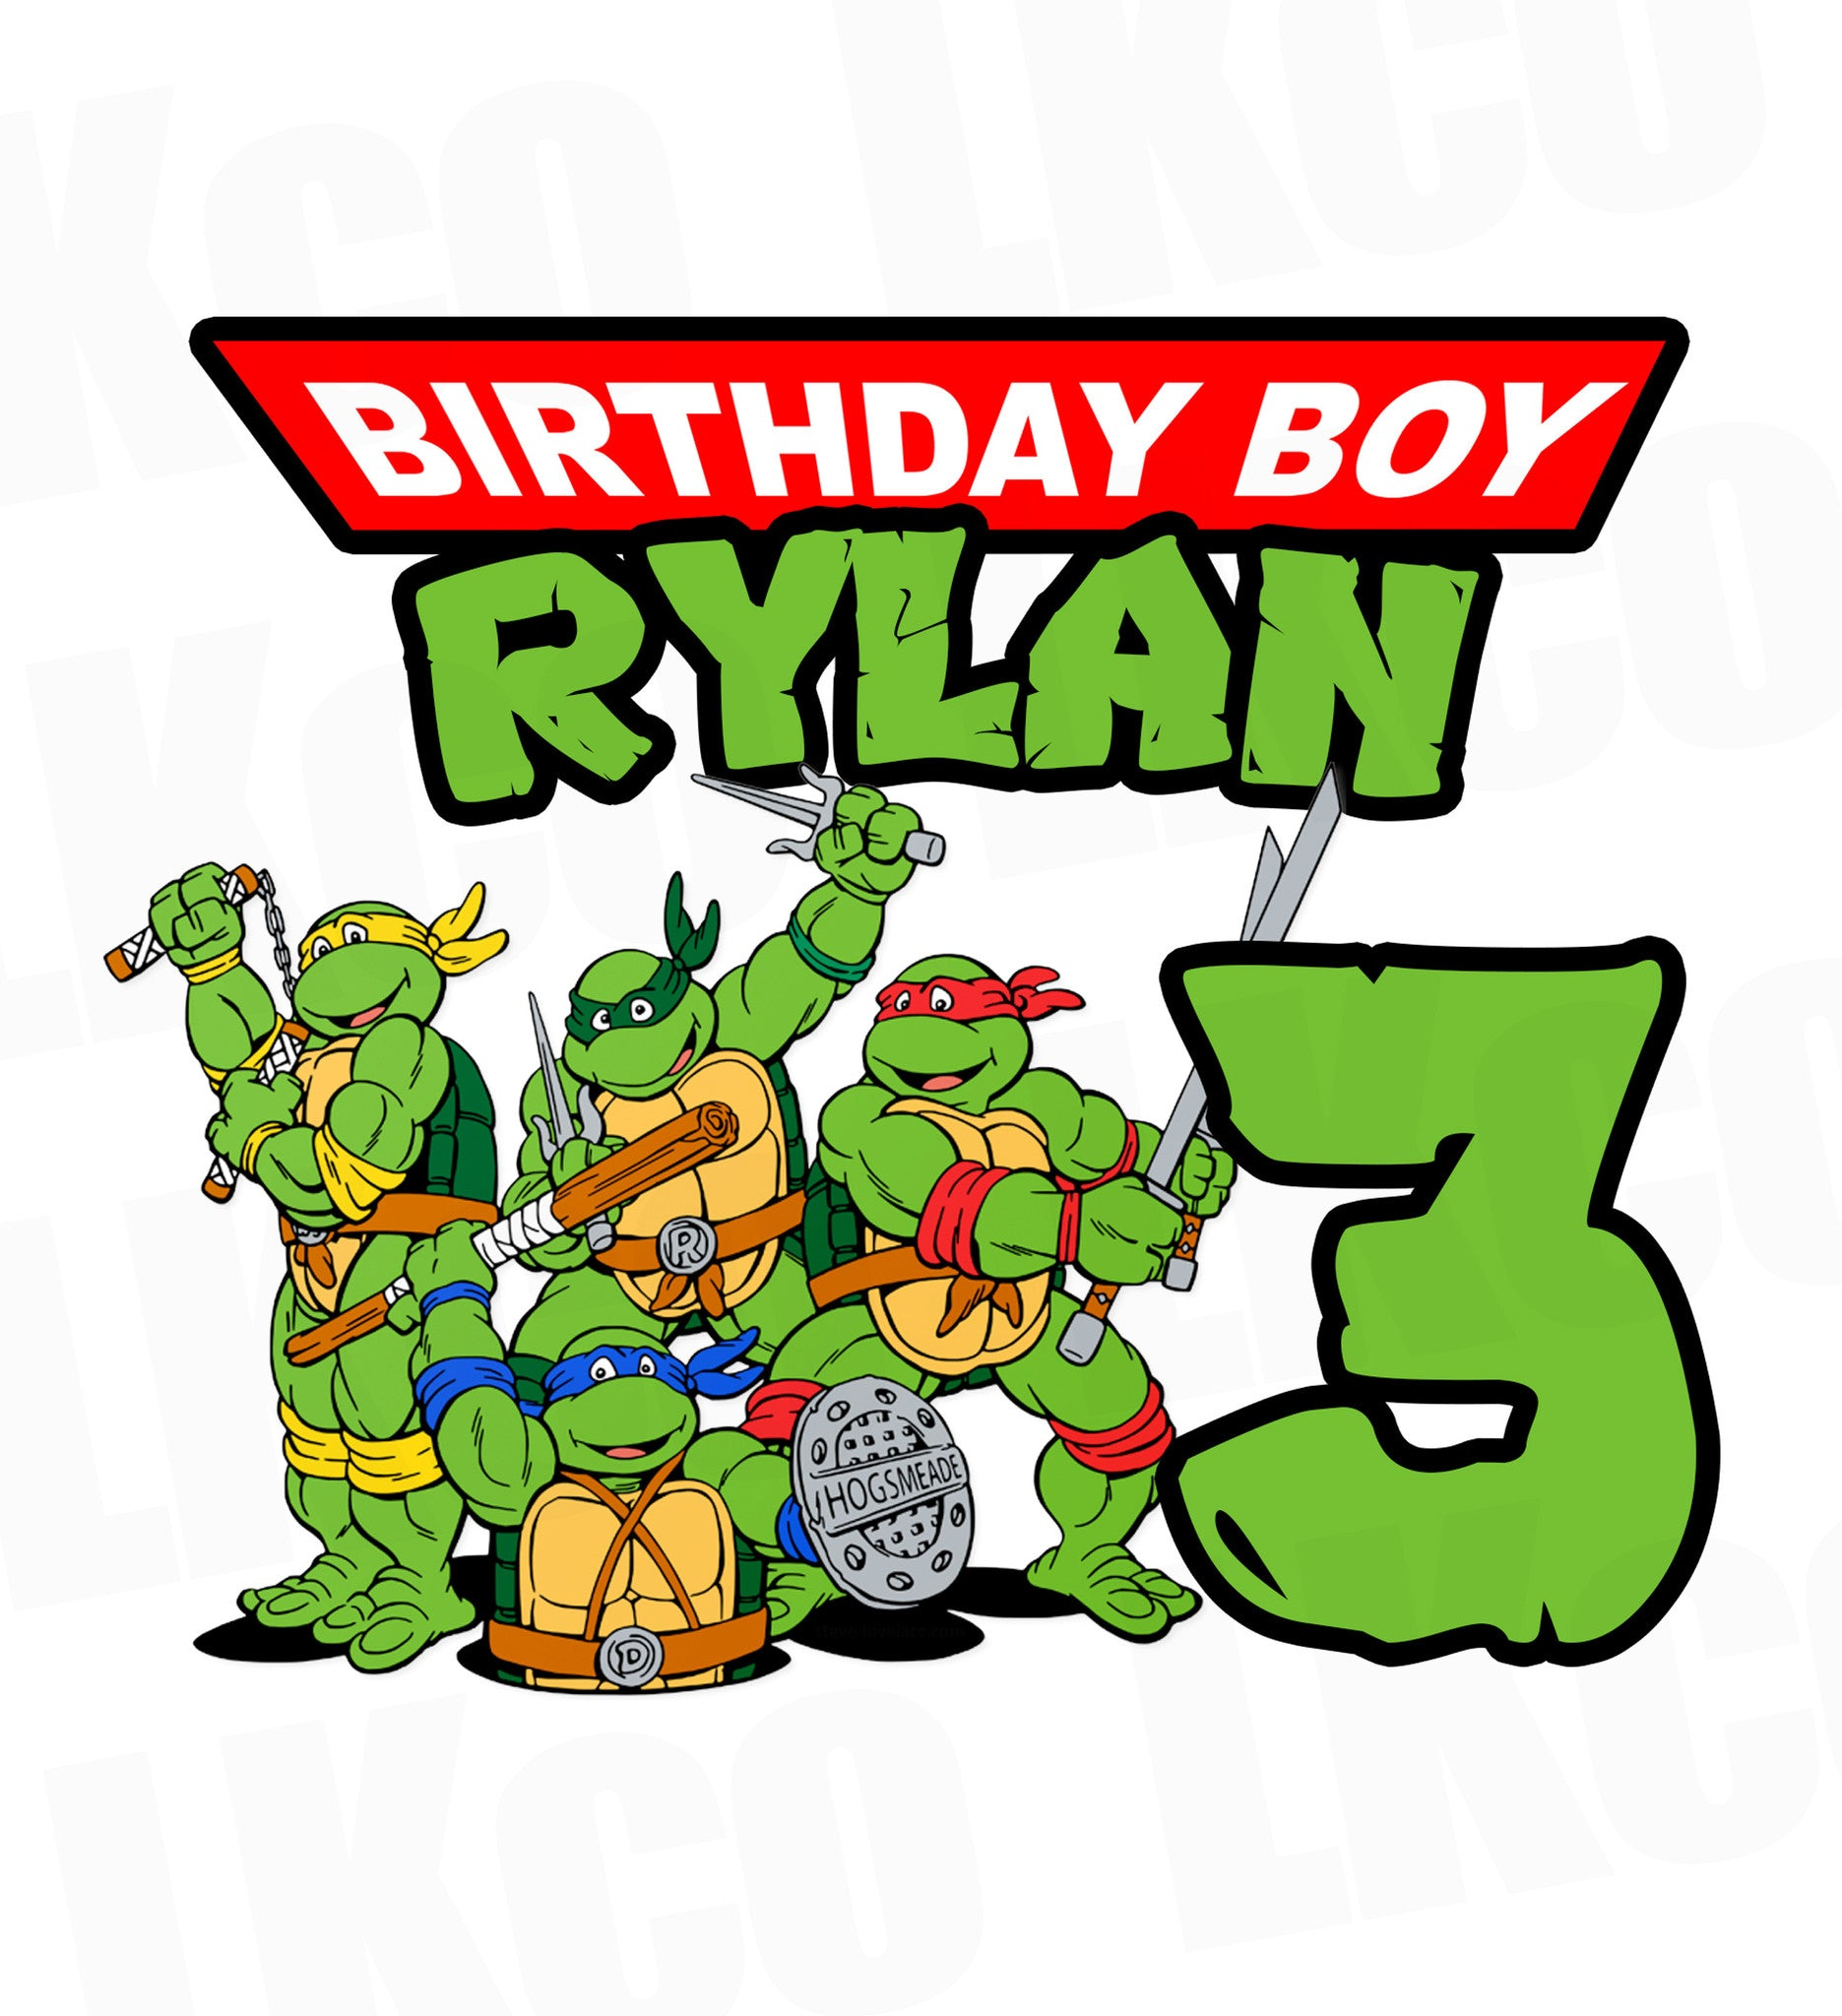 Teenage Mutant Ninja Turtles Iron On Transfer Tmnt Birthday Boy Luvibeekidsco